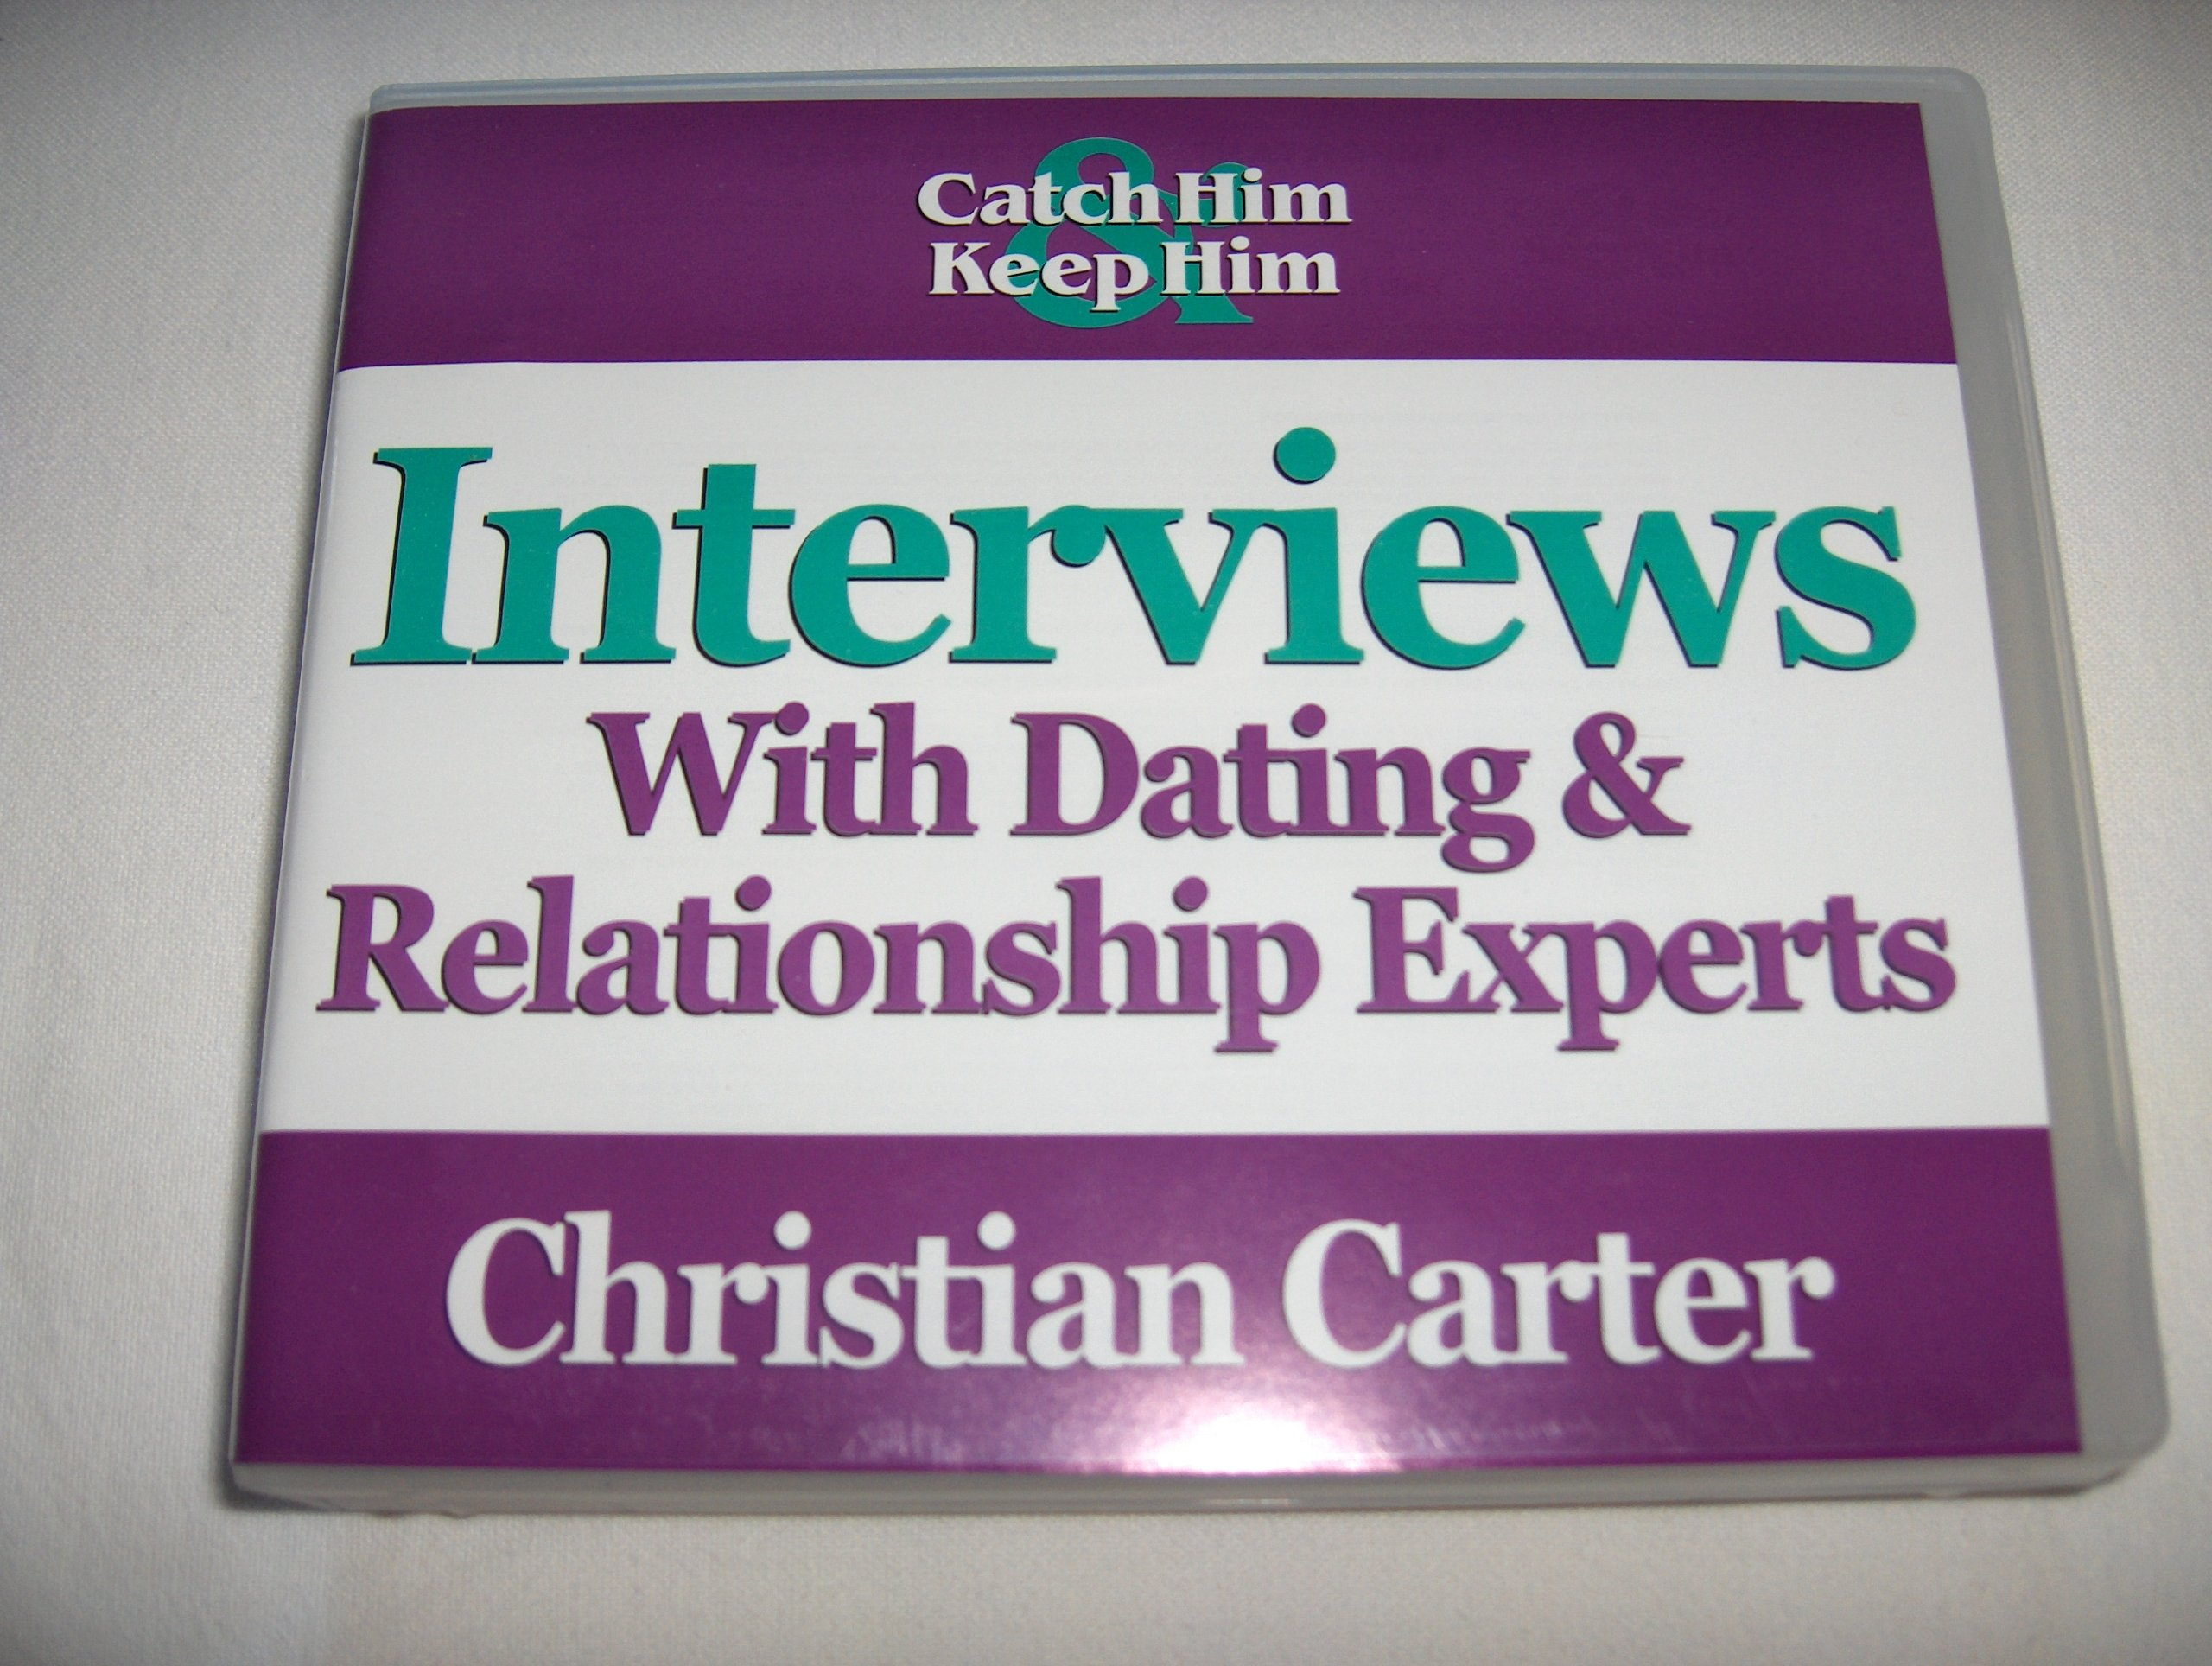 Christian carter interviews dating relationship experts